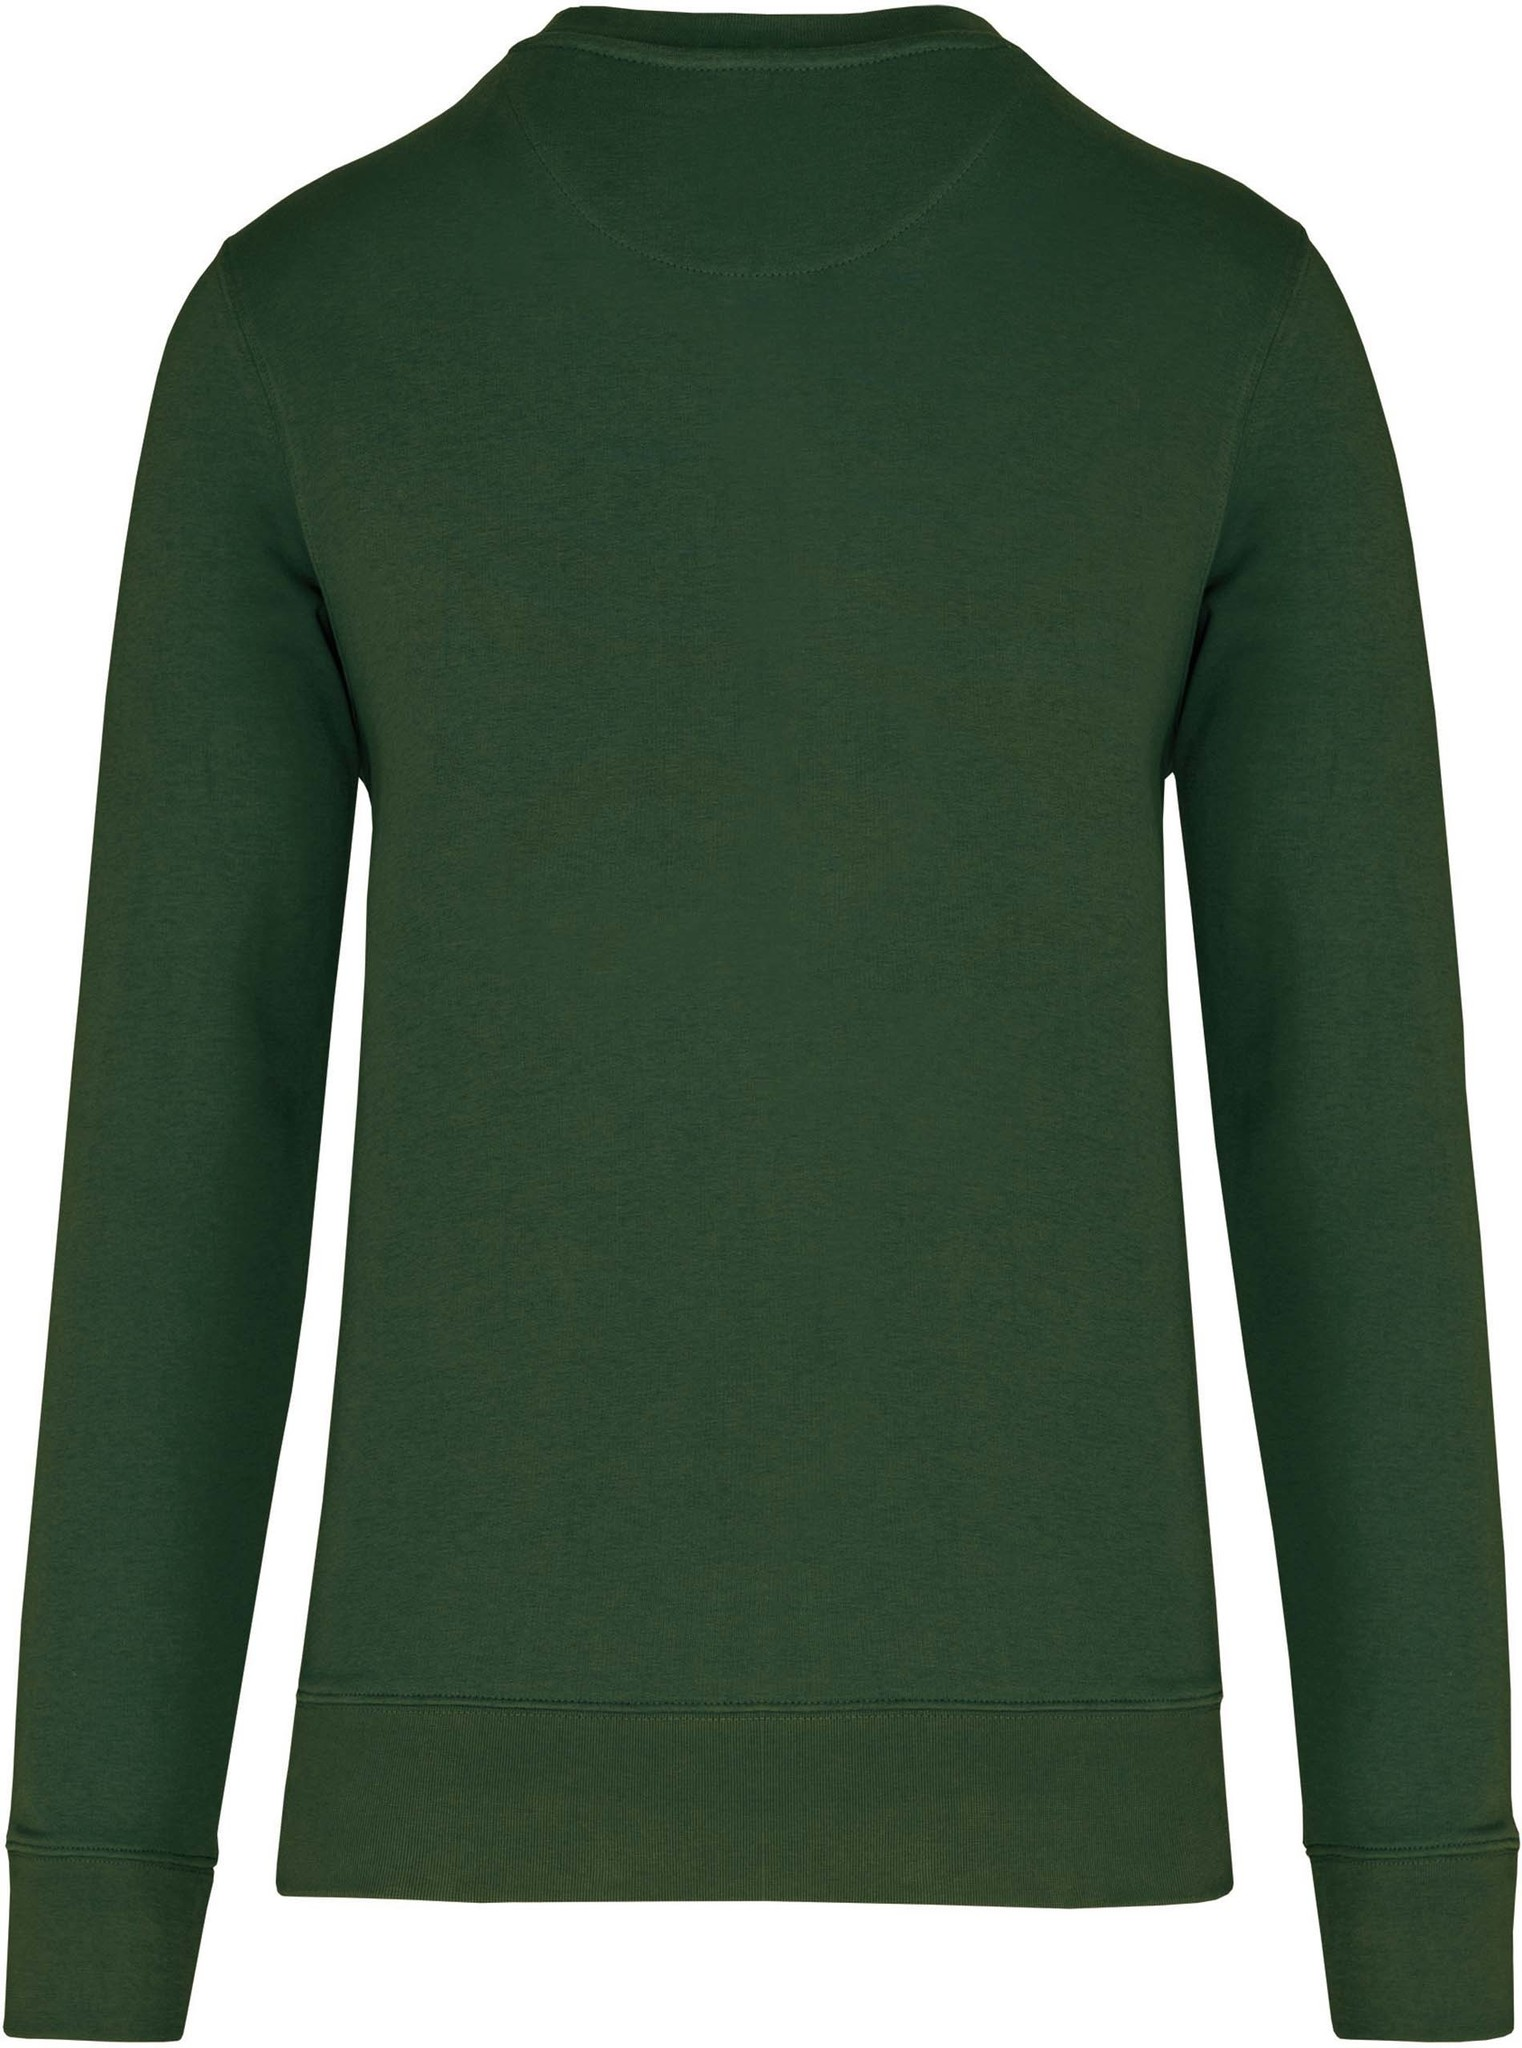 Eco-Friendly Sweater UNI Forest Green